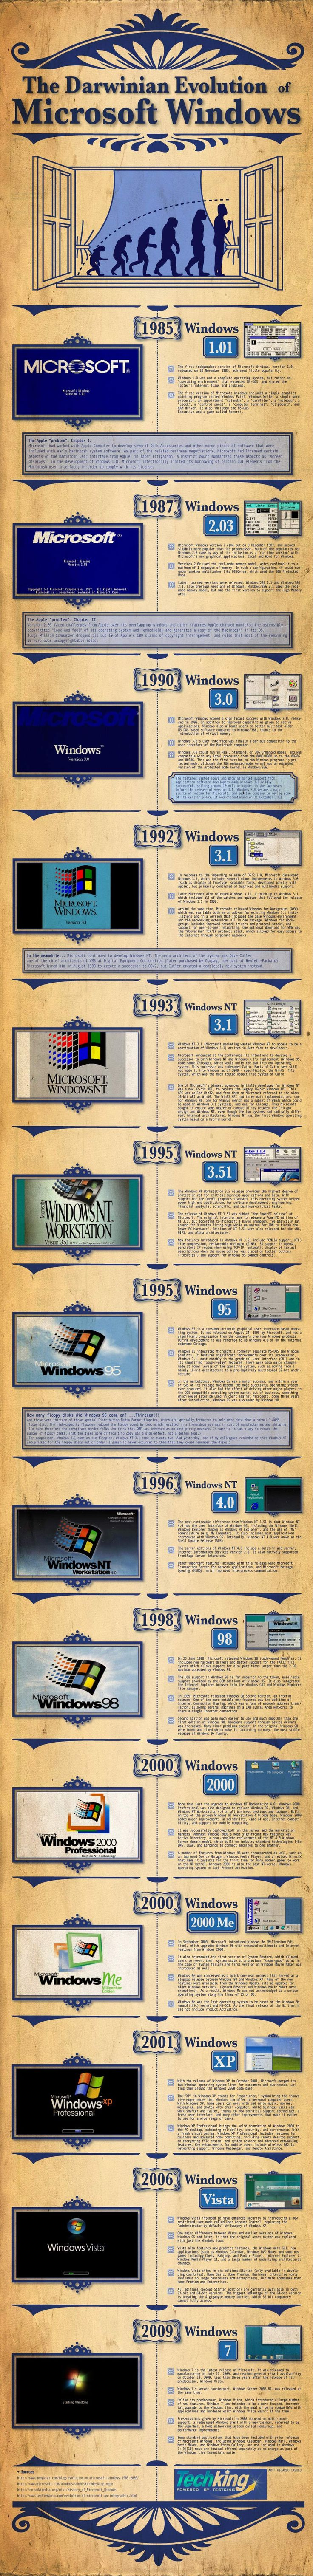 The Darwinian Evolution of Microsoft Windows